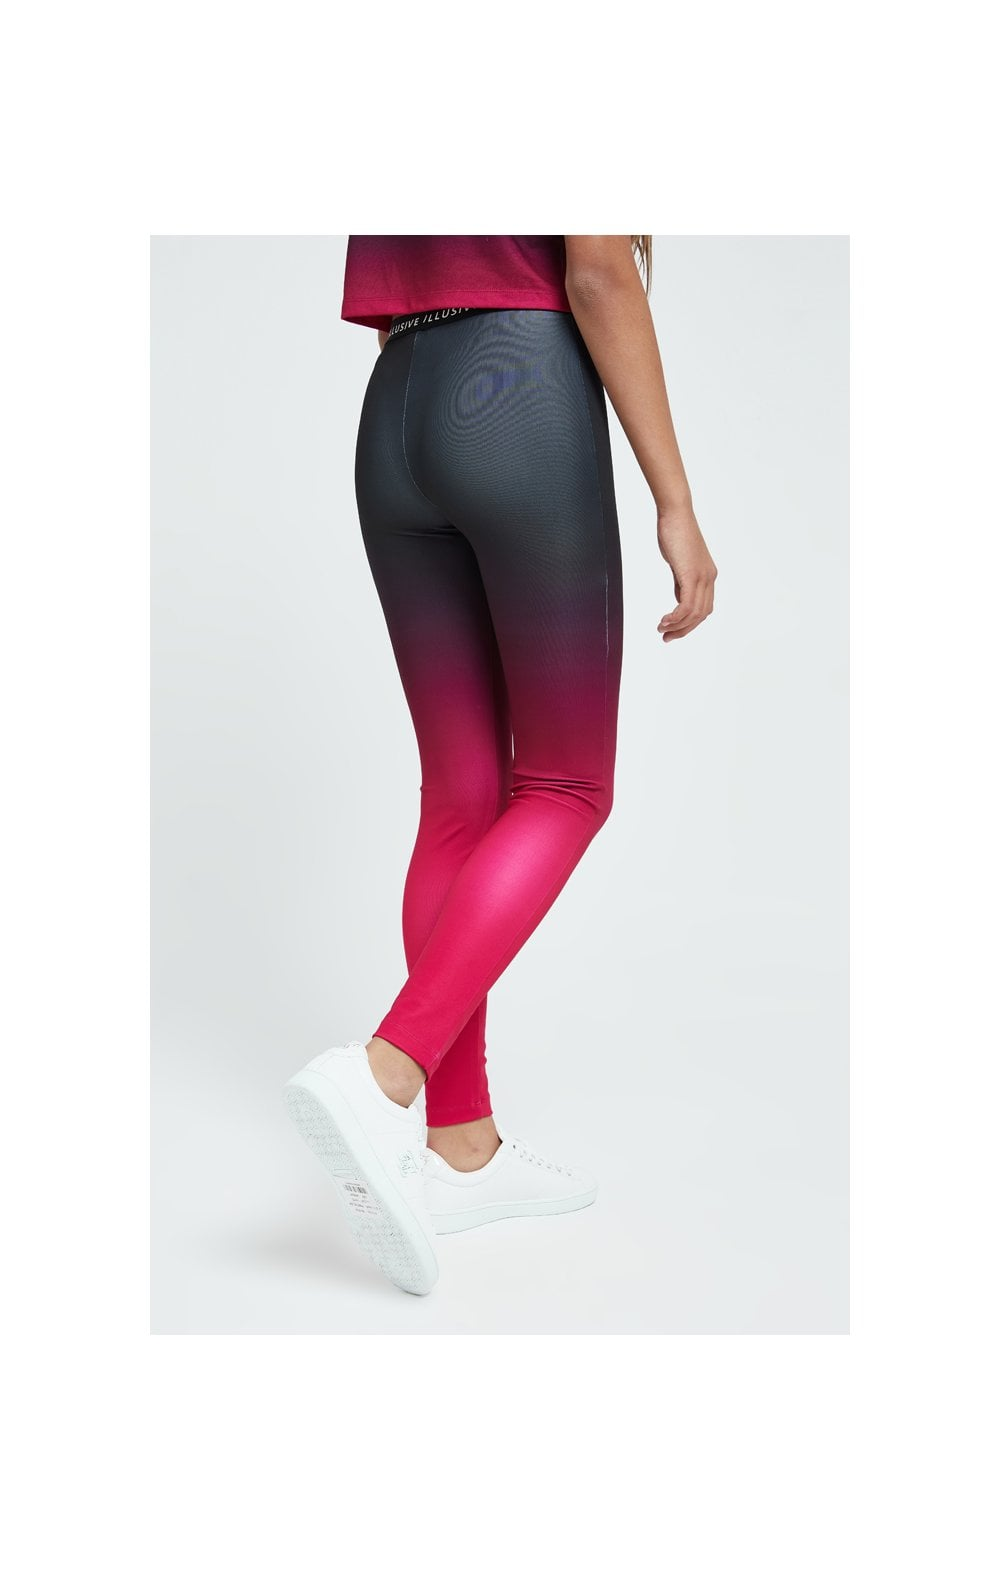 Load image into Gallery viewer, Illusive London Fade Leggings - Pink & Black (3)